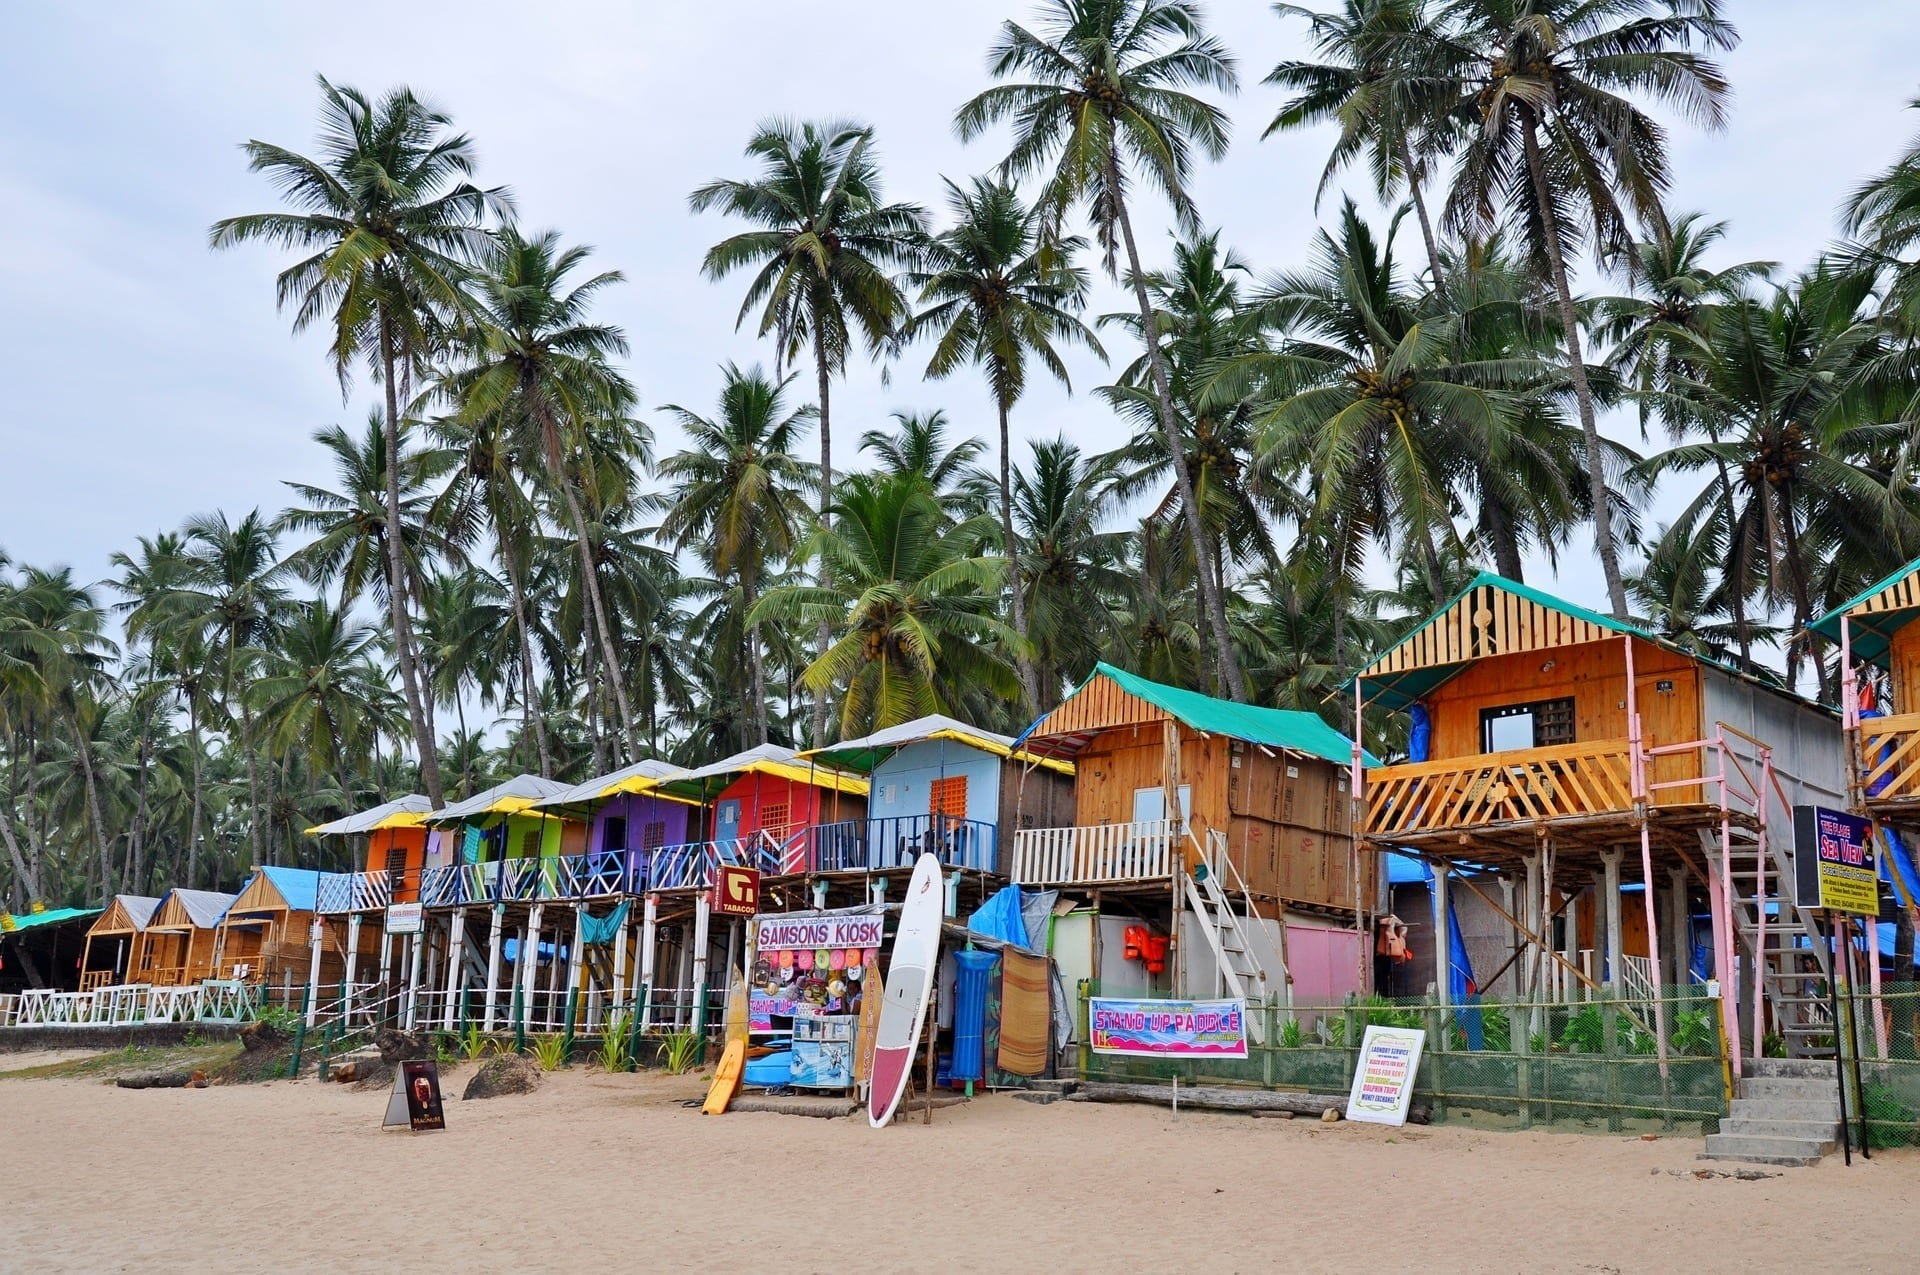 A line of brightly painted beach shacks beneath palm trees on the sand in Goa, India.